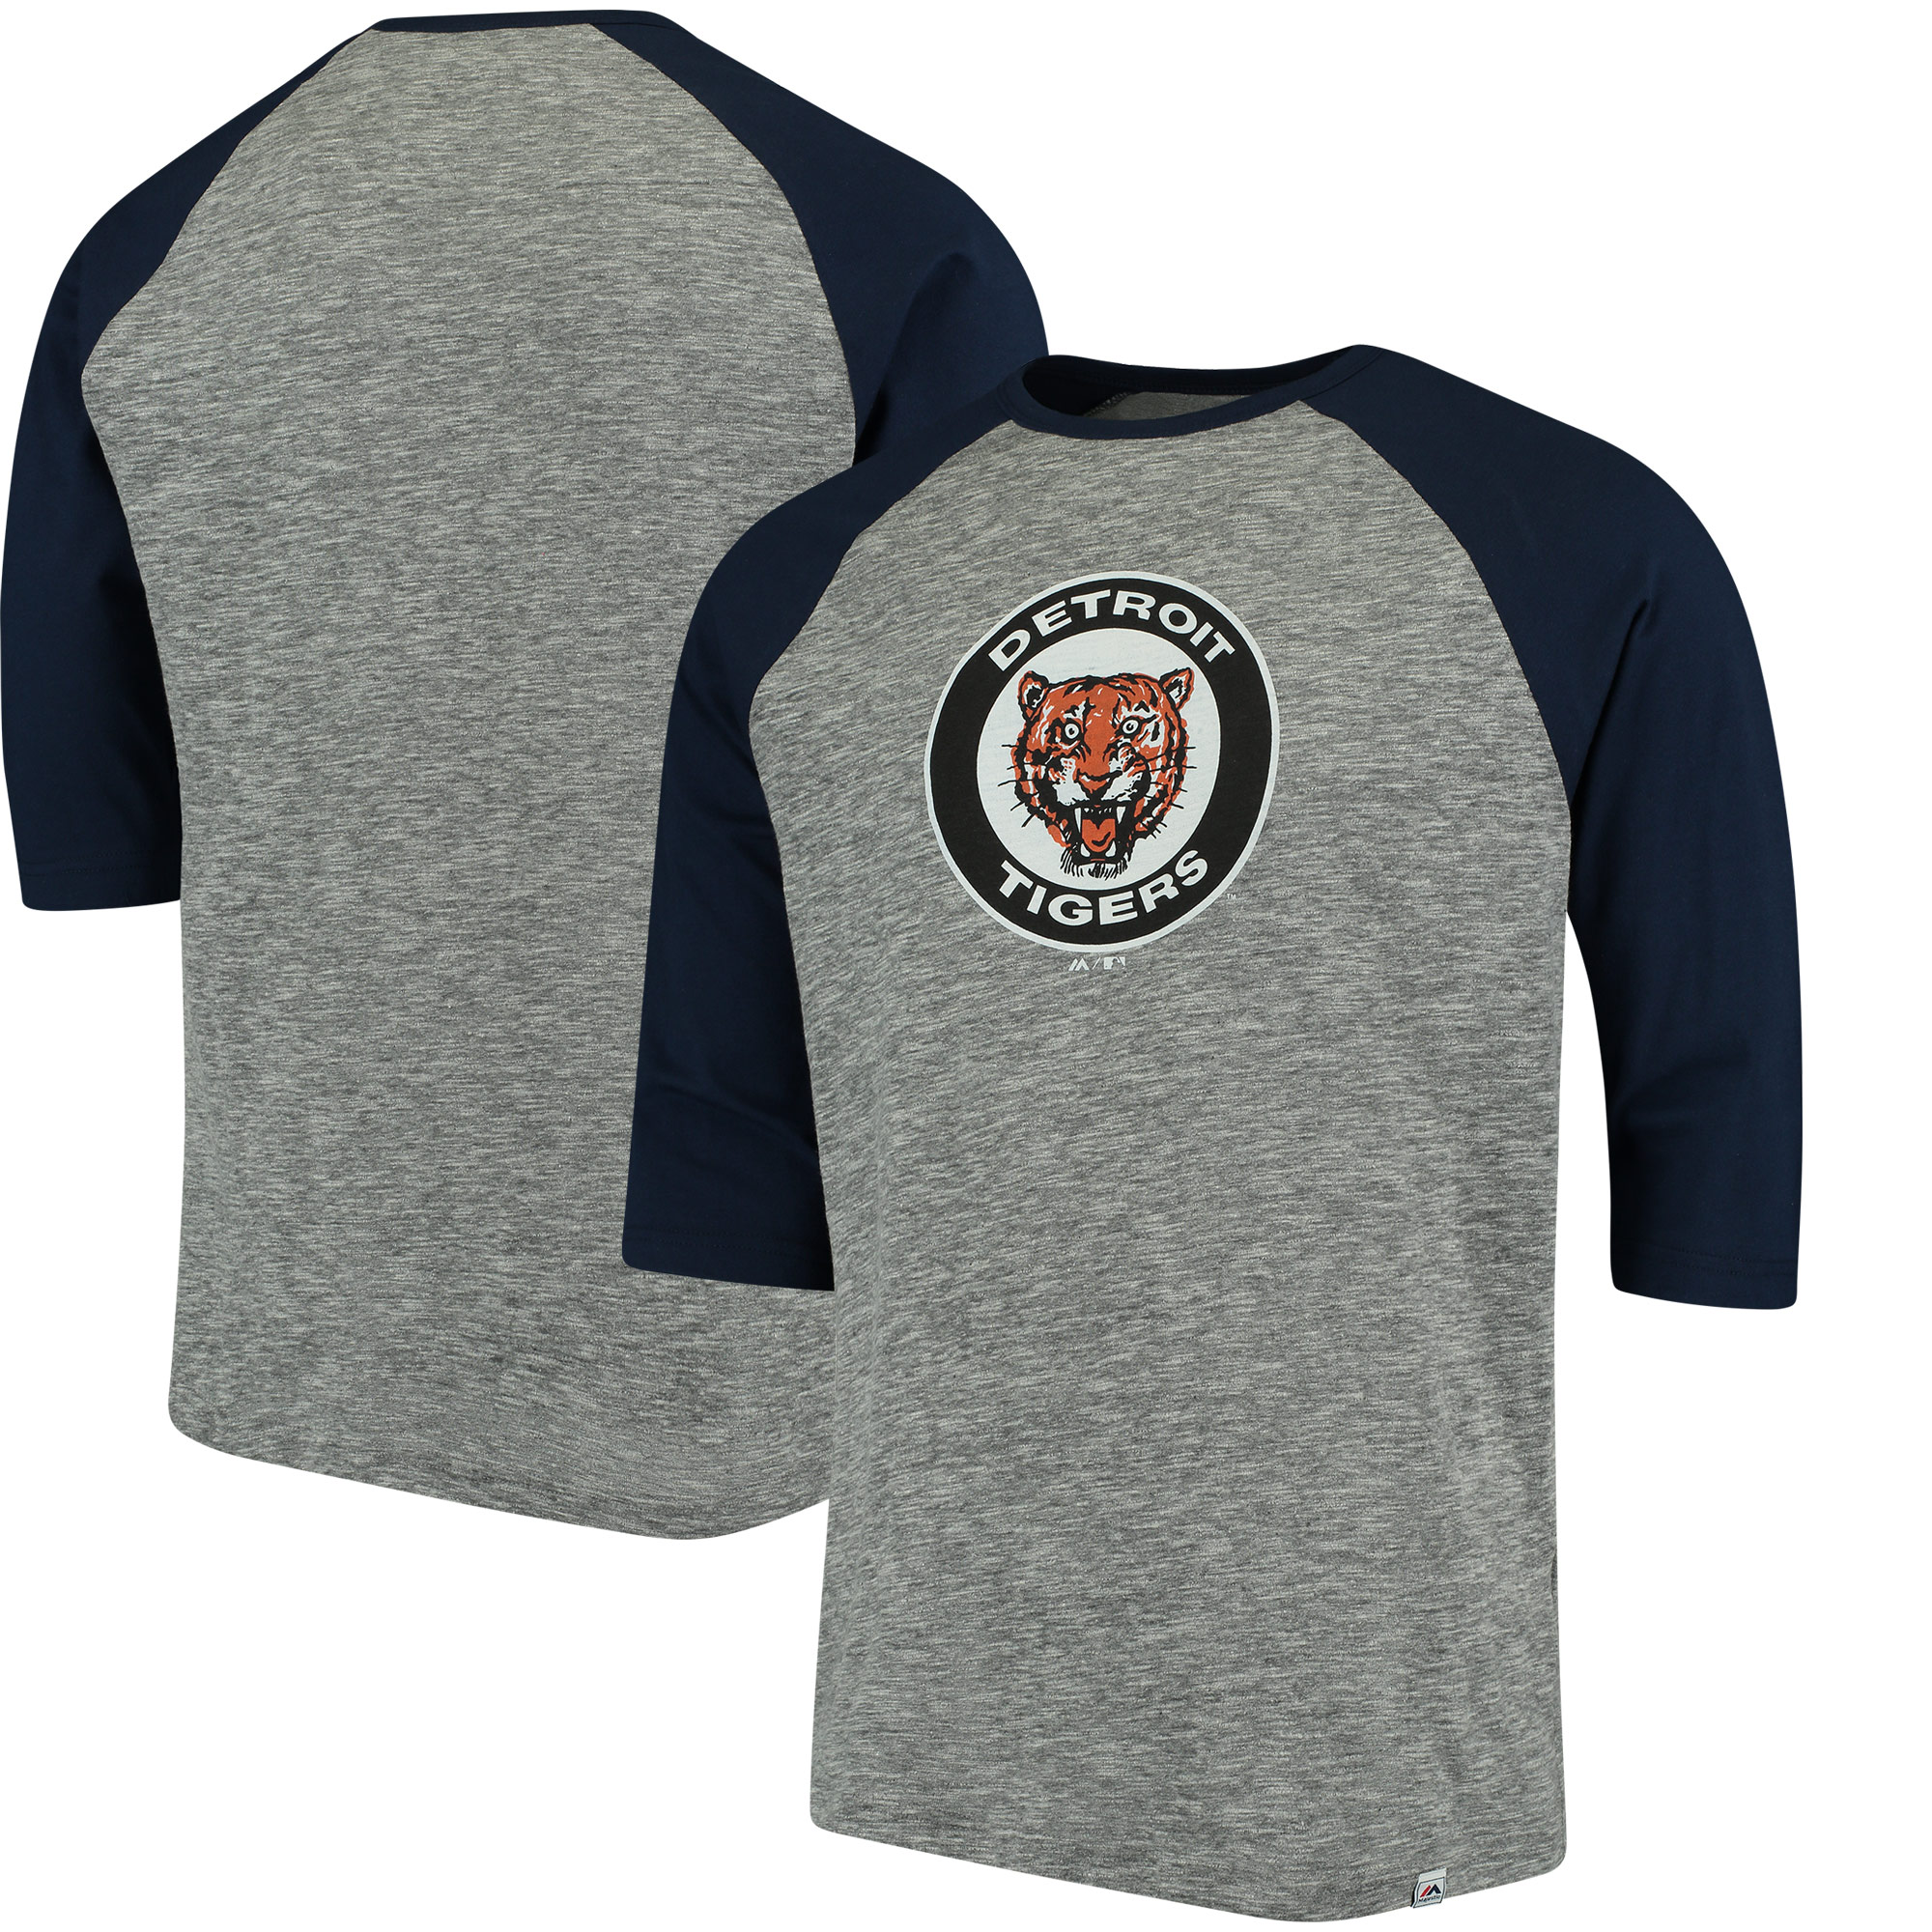 Detroit Tigers Majestic Cooperstown Collection Logo 3/4-Sleeve Raglan T-Shirt - Gray/Navy